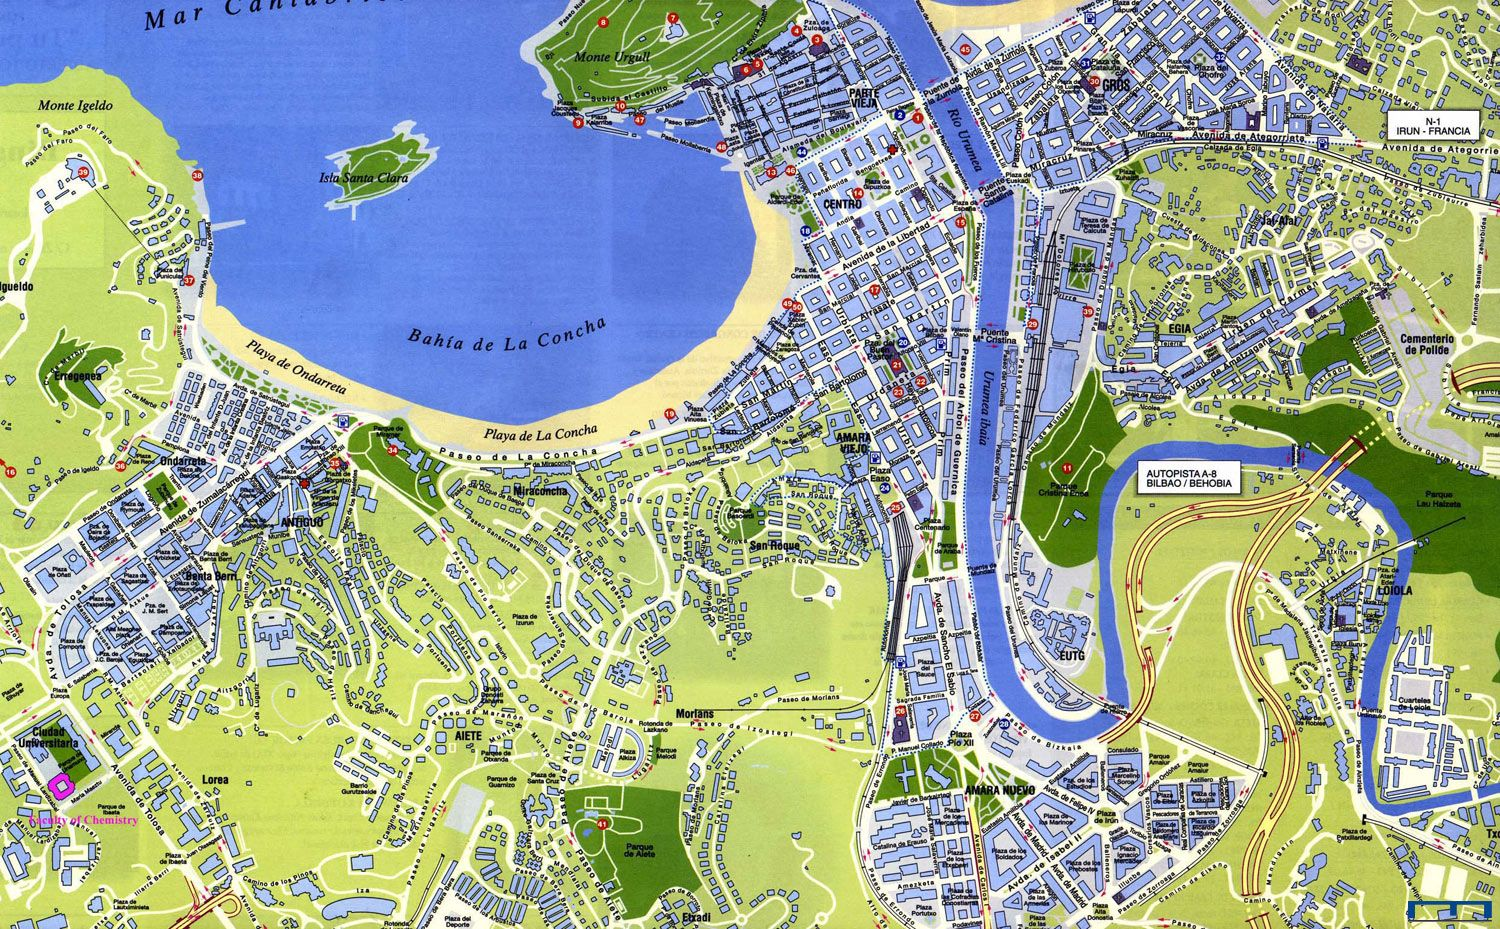 San sebastian tourism in the heart of the tourist area of the city and with convenient opening - San sebastian tourist office ...